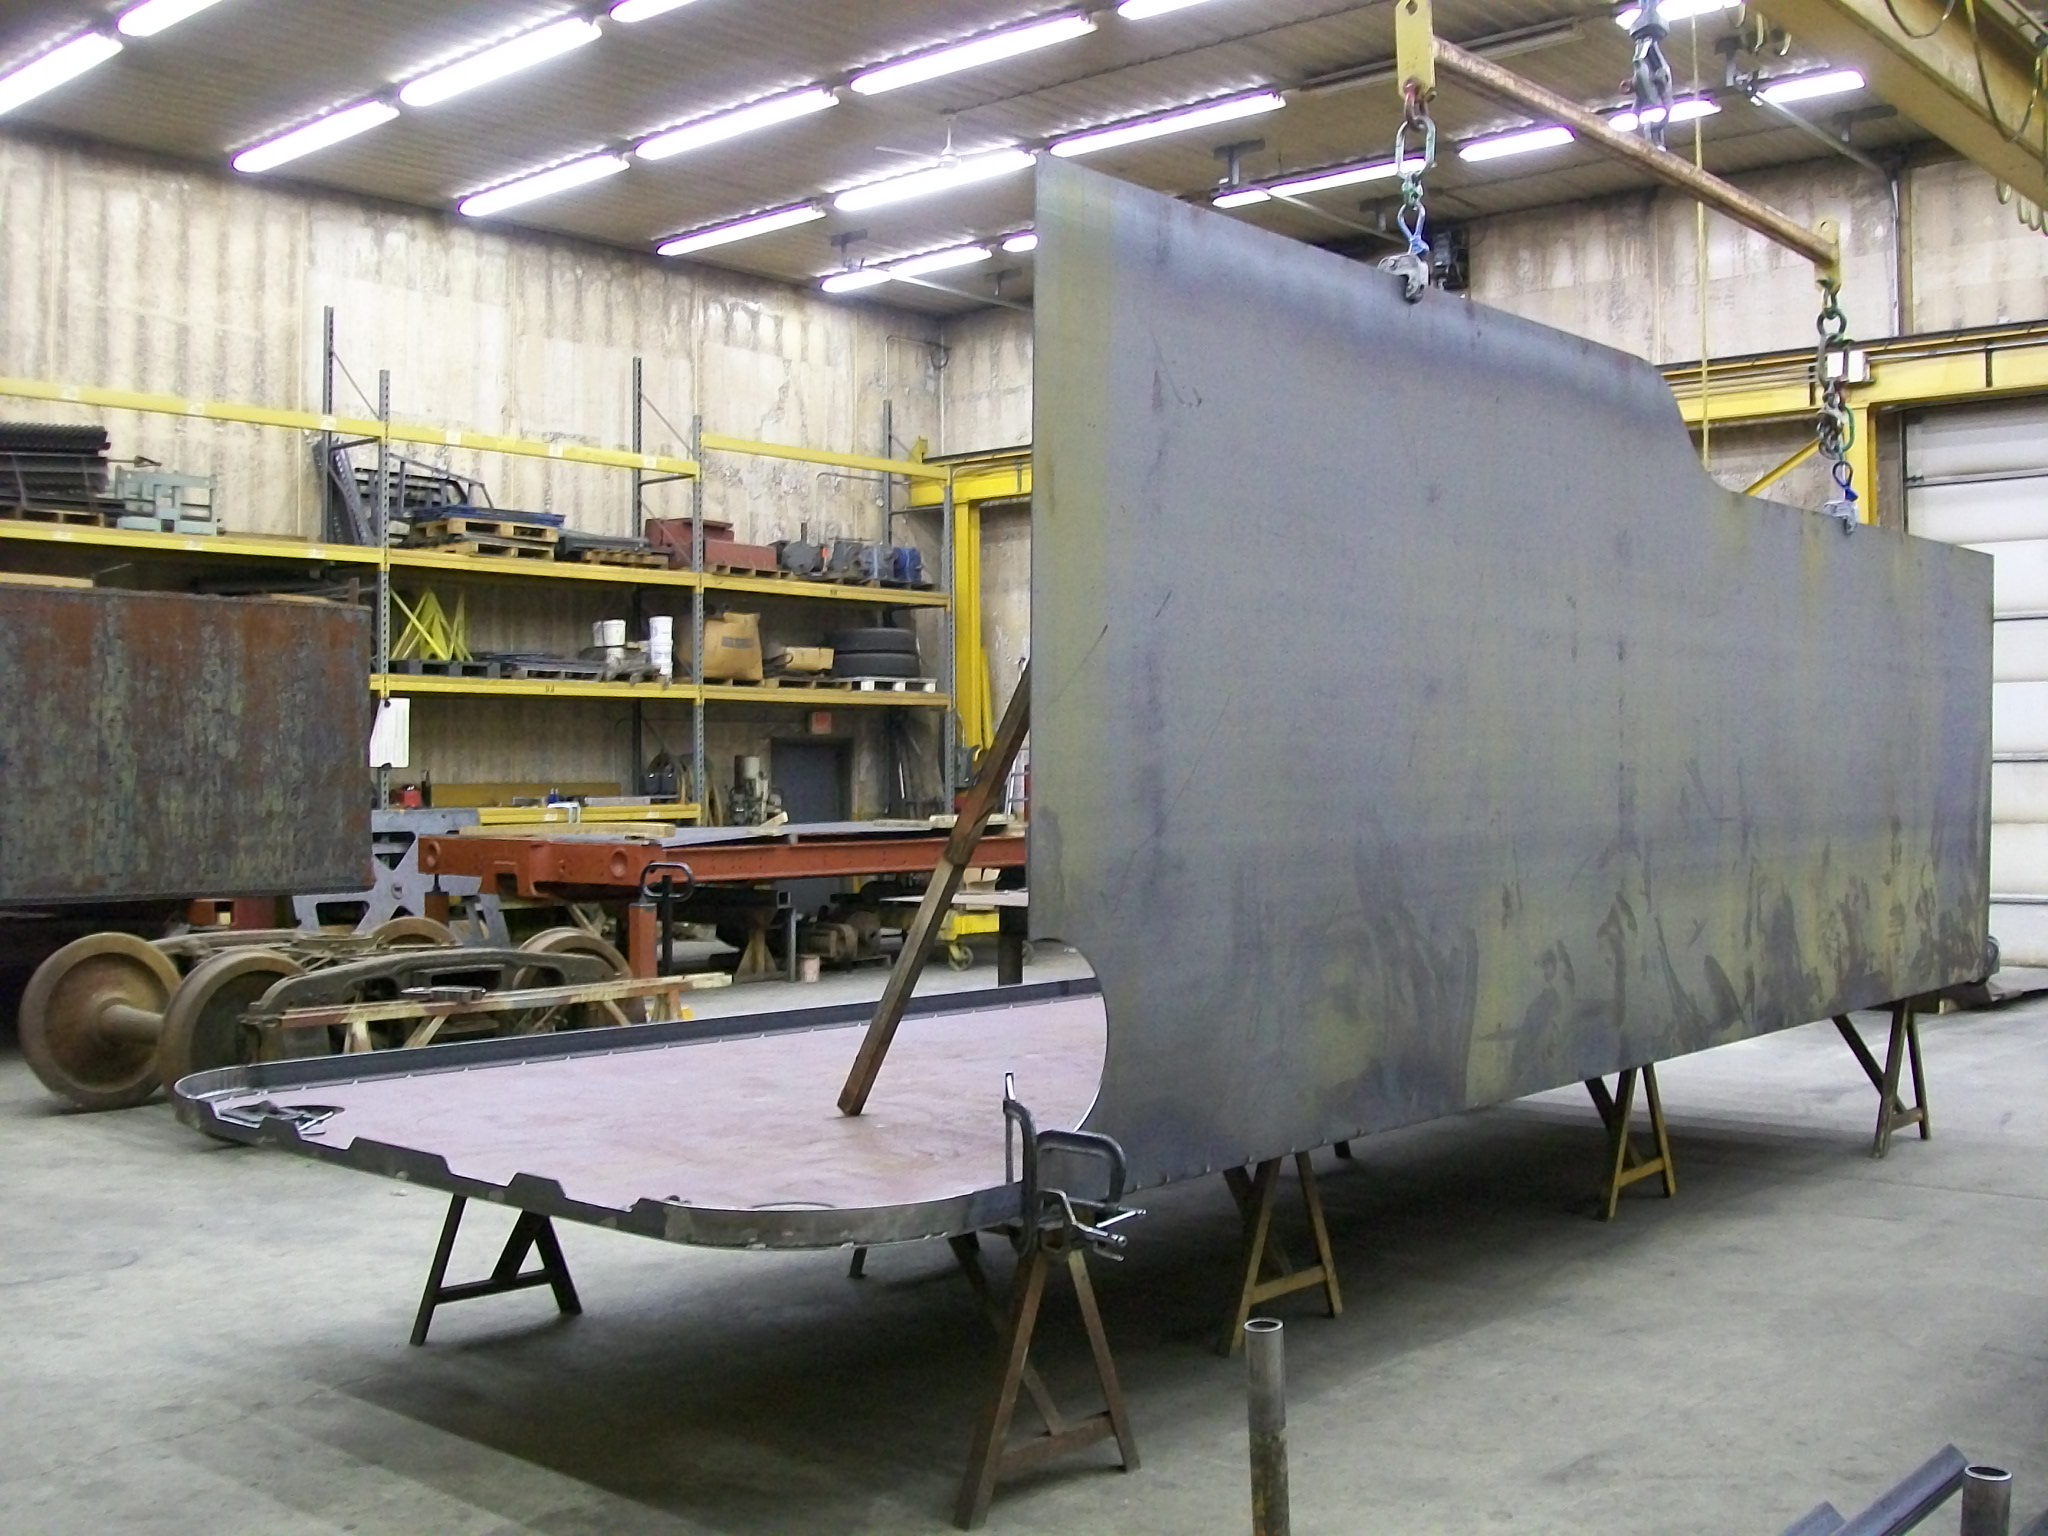 New C&NW 1385 tender tank under construction at DRM Industries in Lake Delton, Wis. Feb 10, 2012. Photo from DRM Industries.